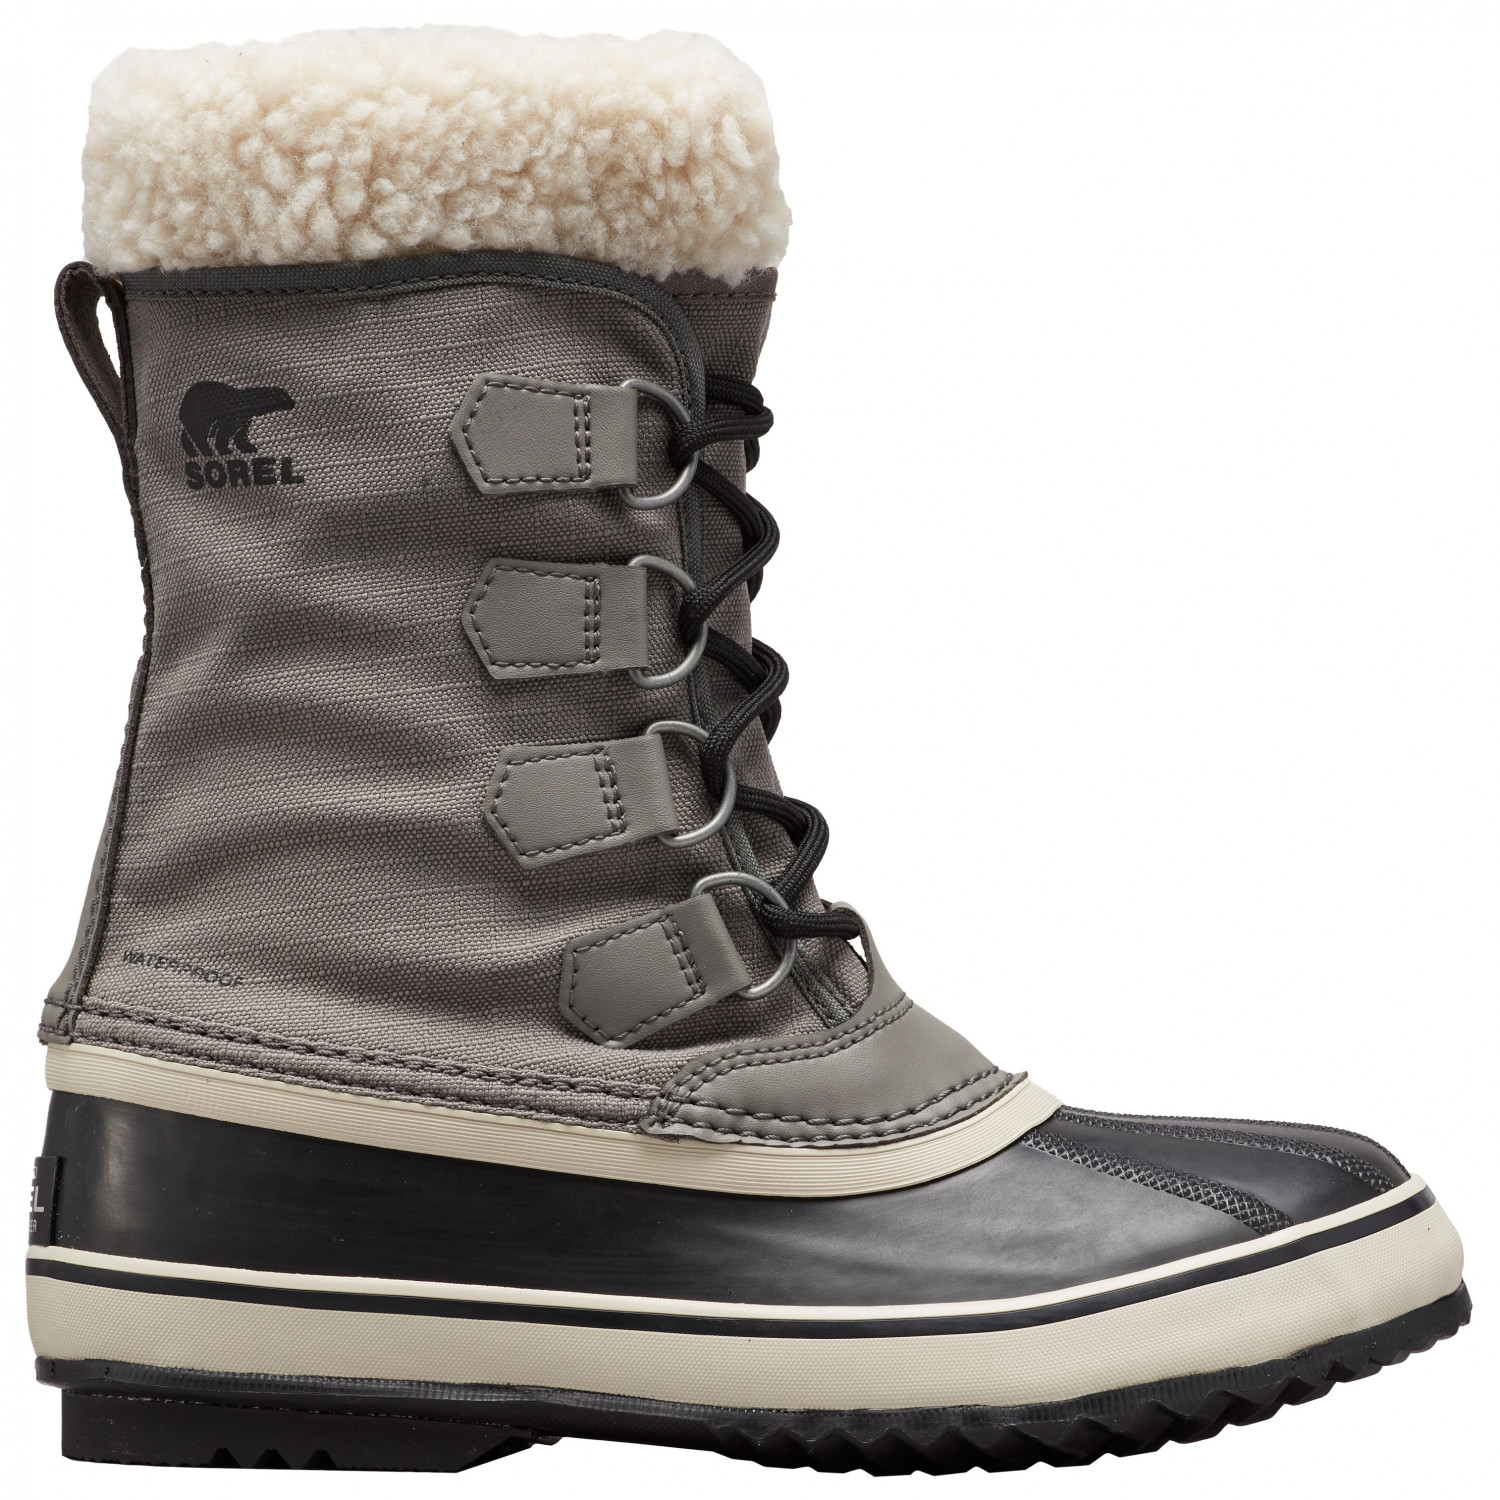 Winter Carnival Womens Boots